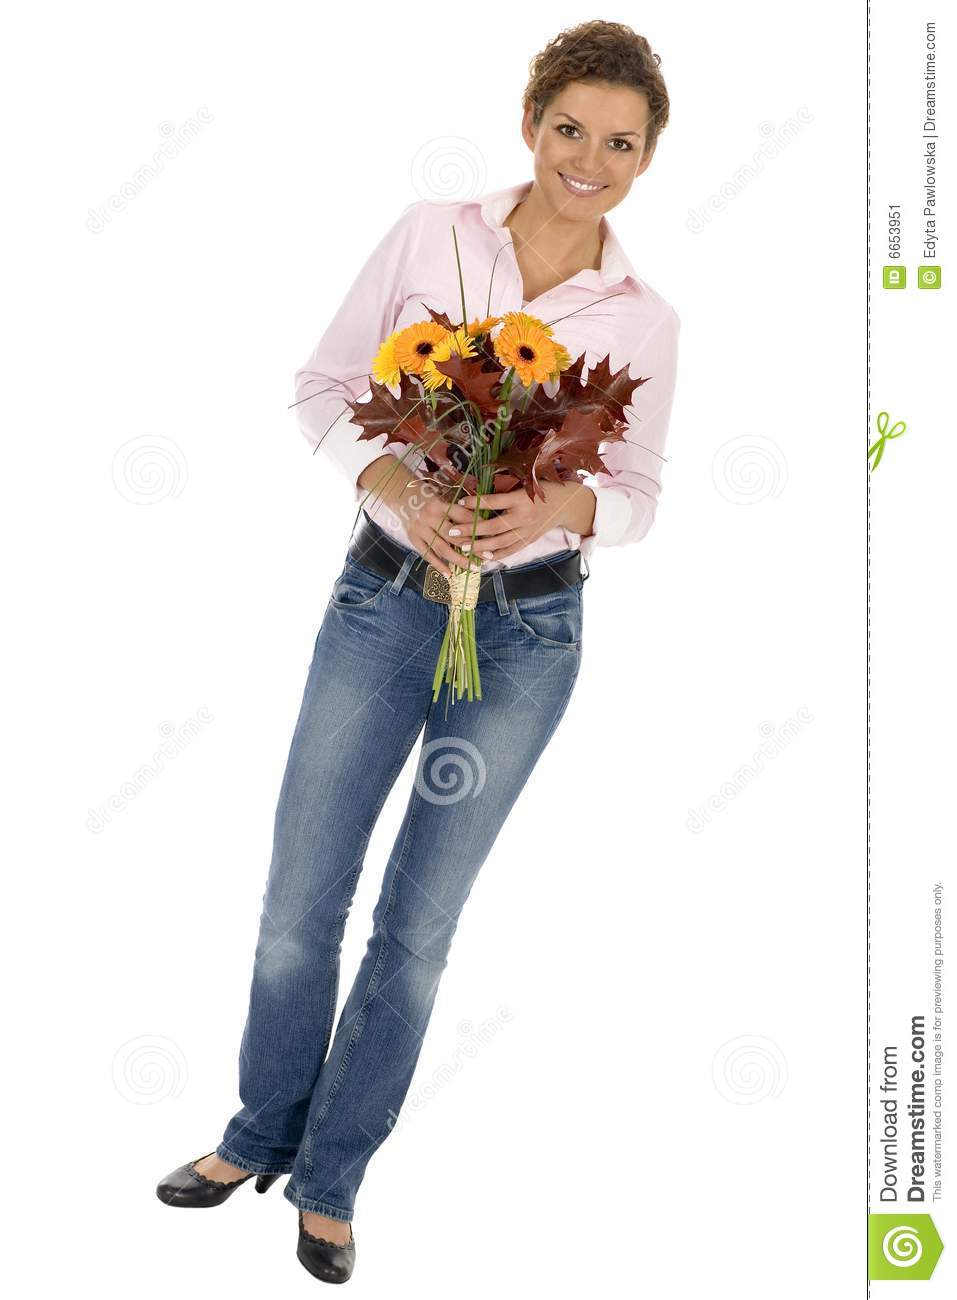 Woman Holding Bunch Of Flowers Royalty-Free Stock Image ...